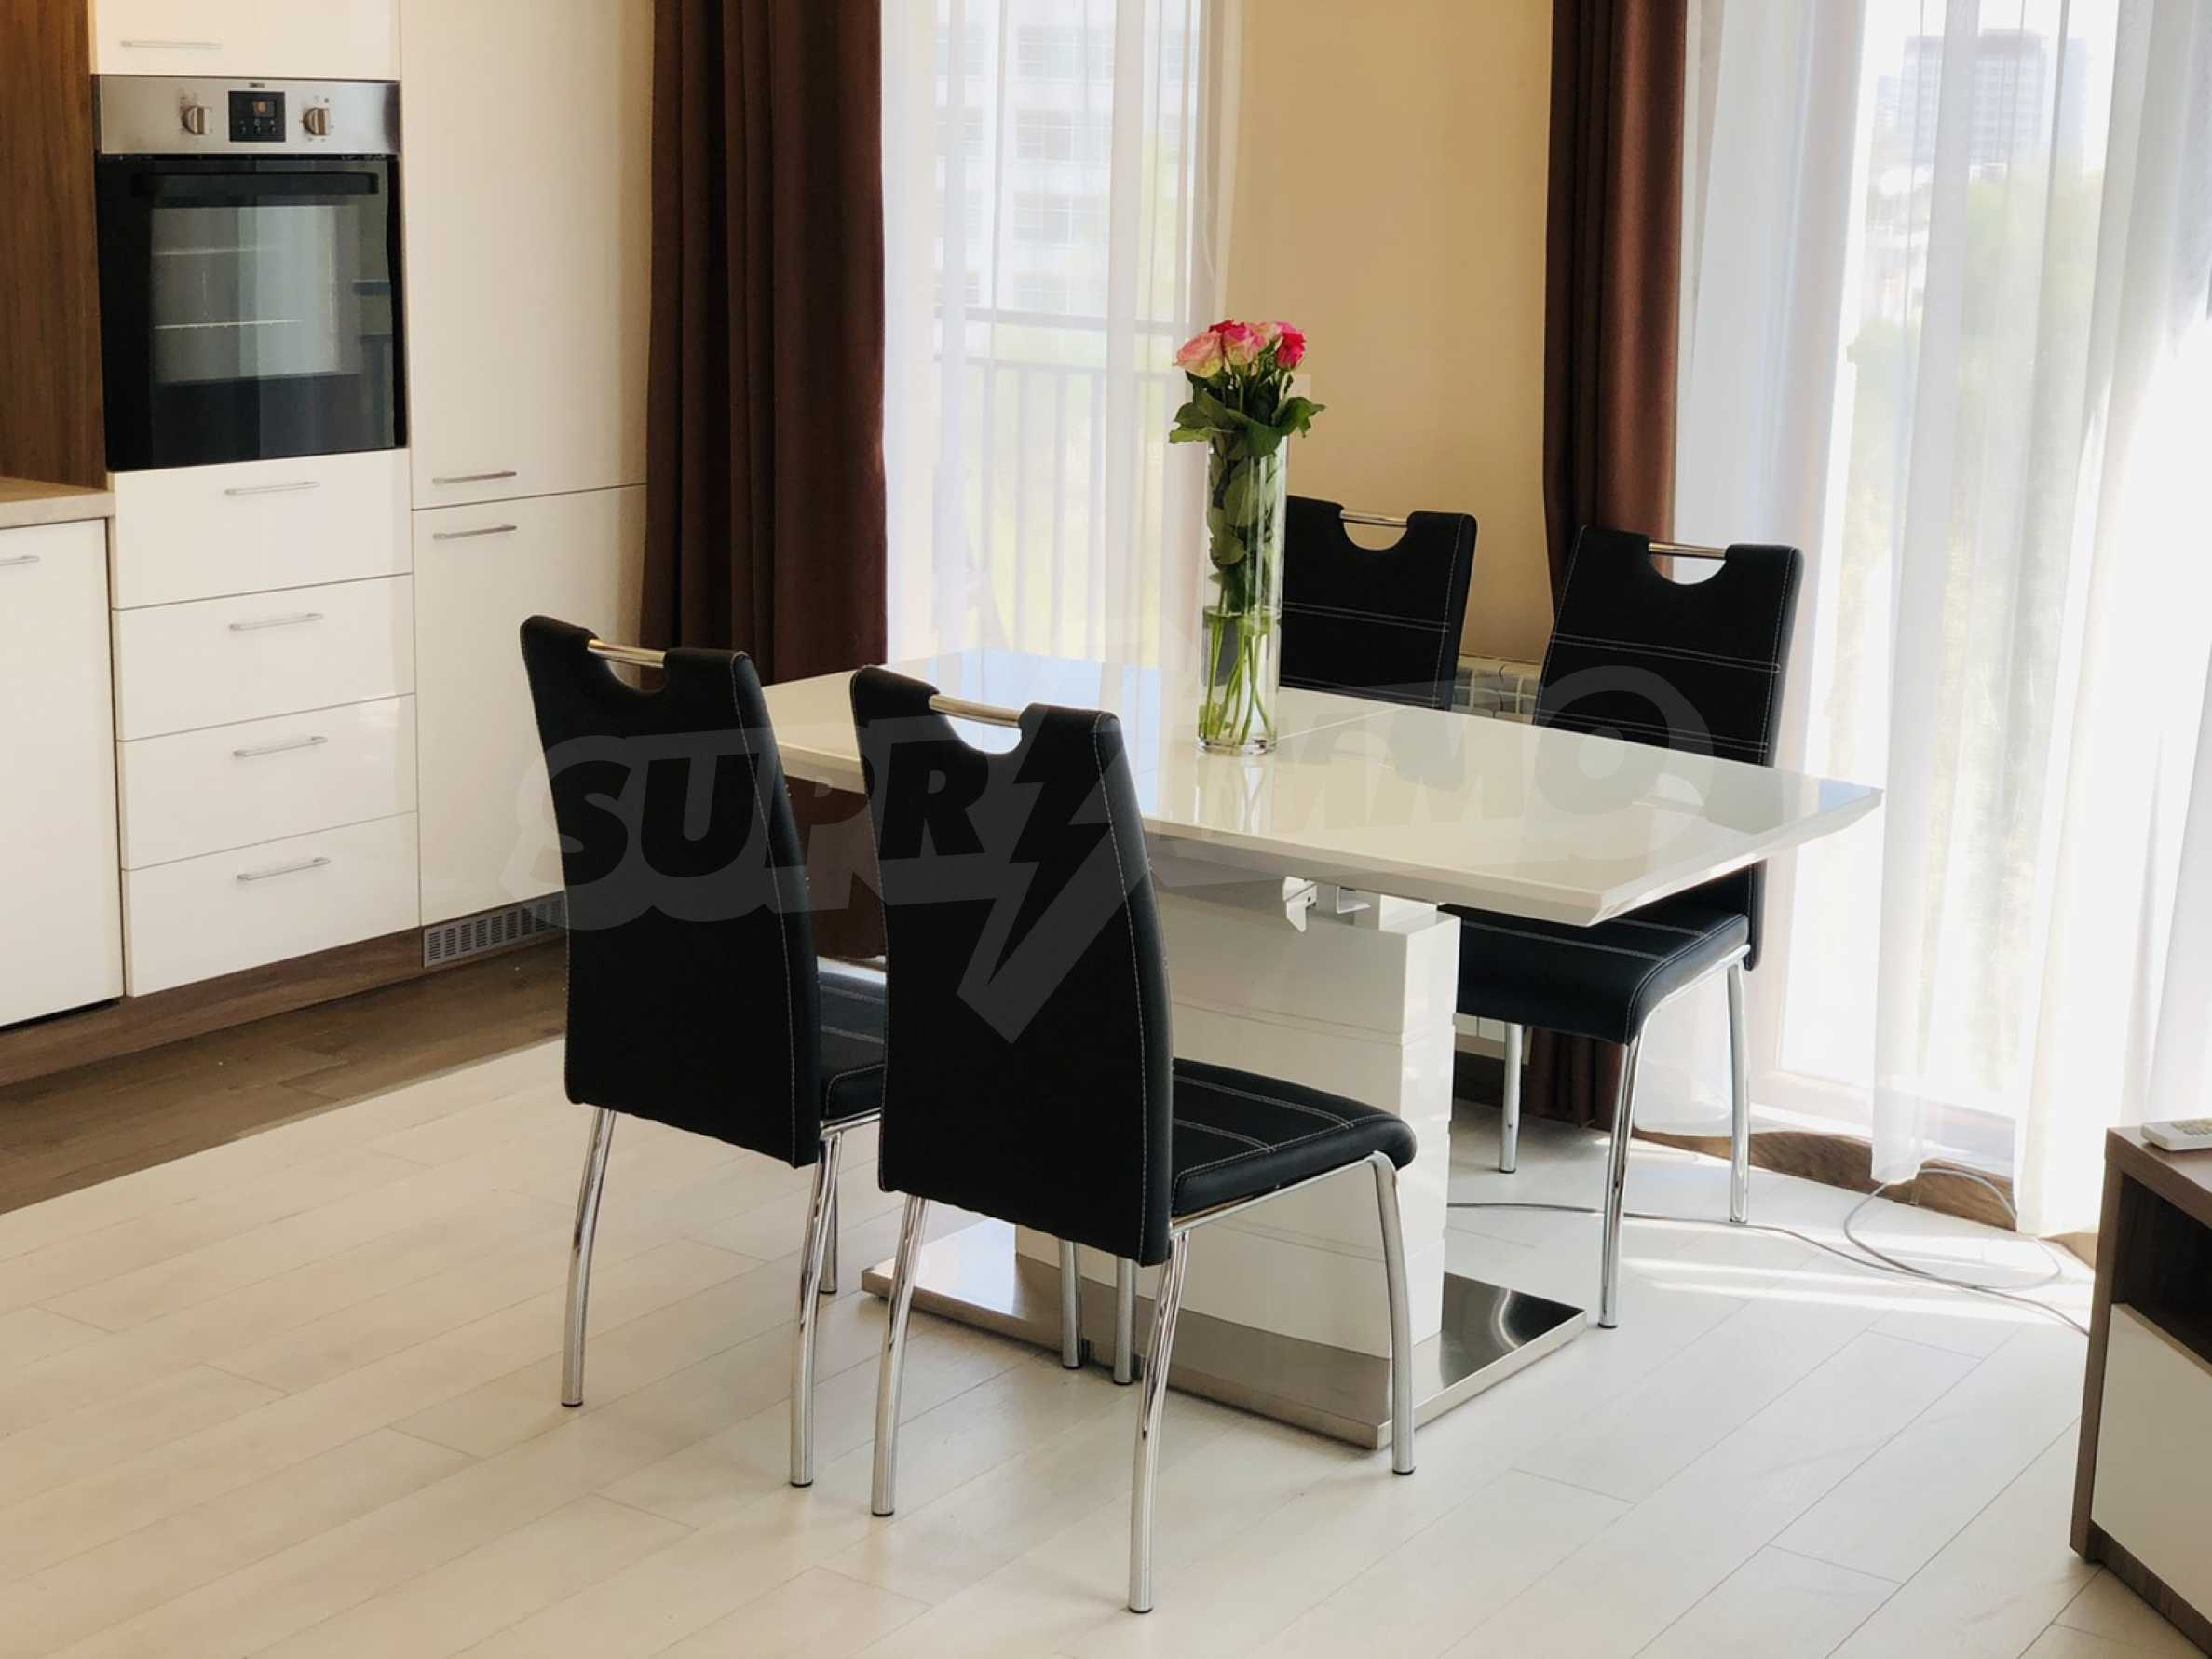 Two-bedroom, fully furnished, designer apartment in Student City 2